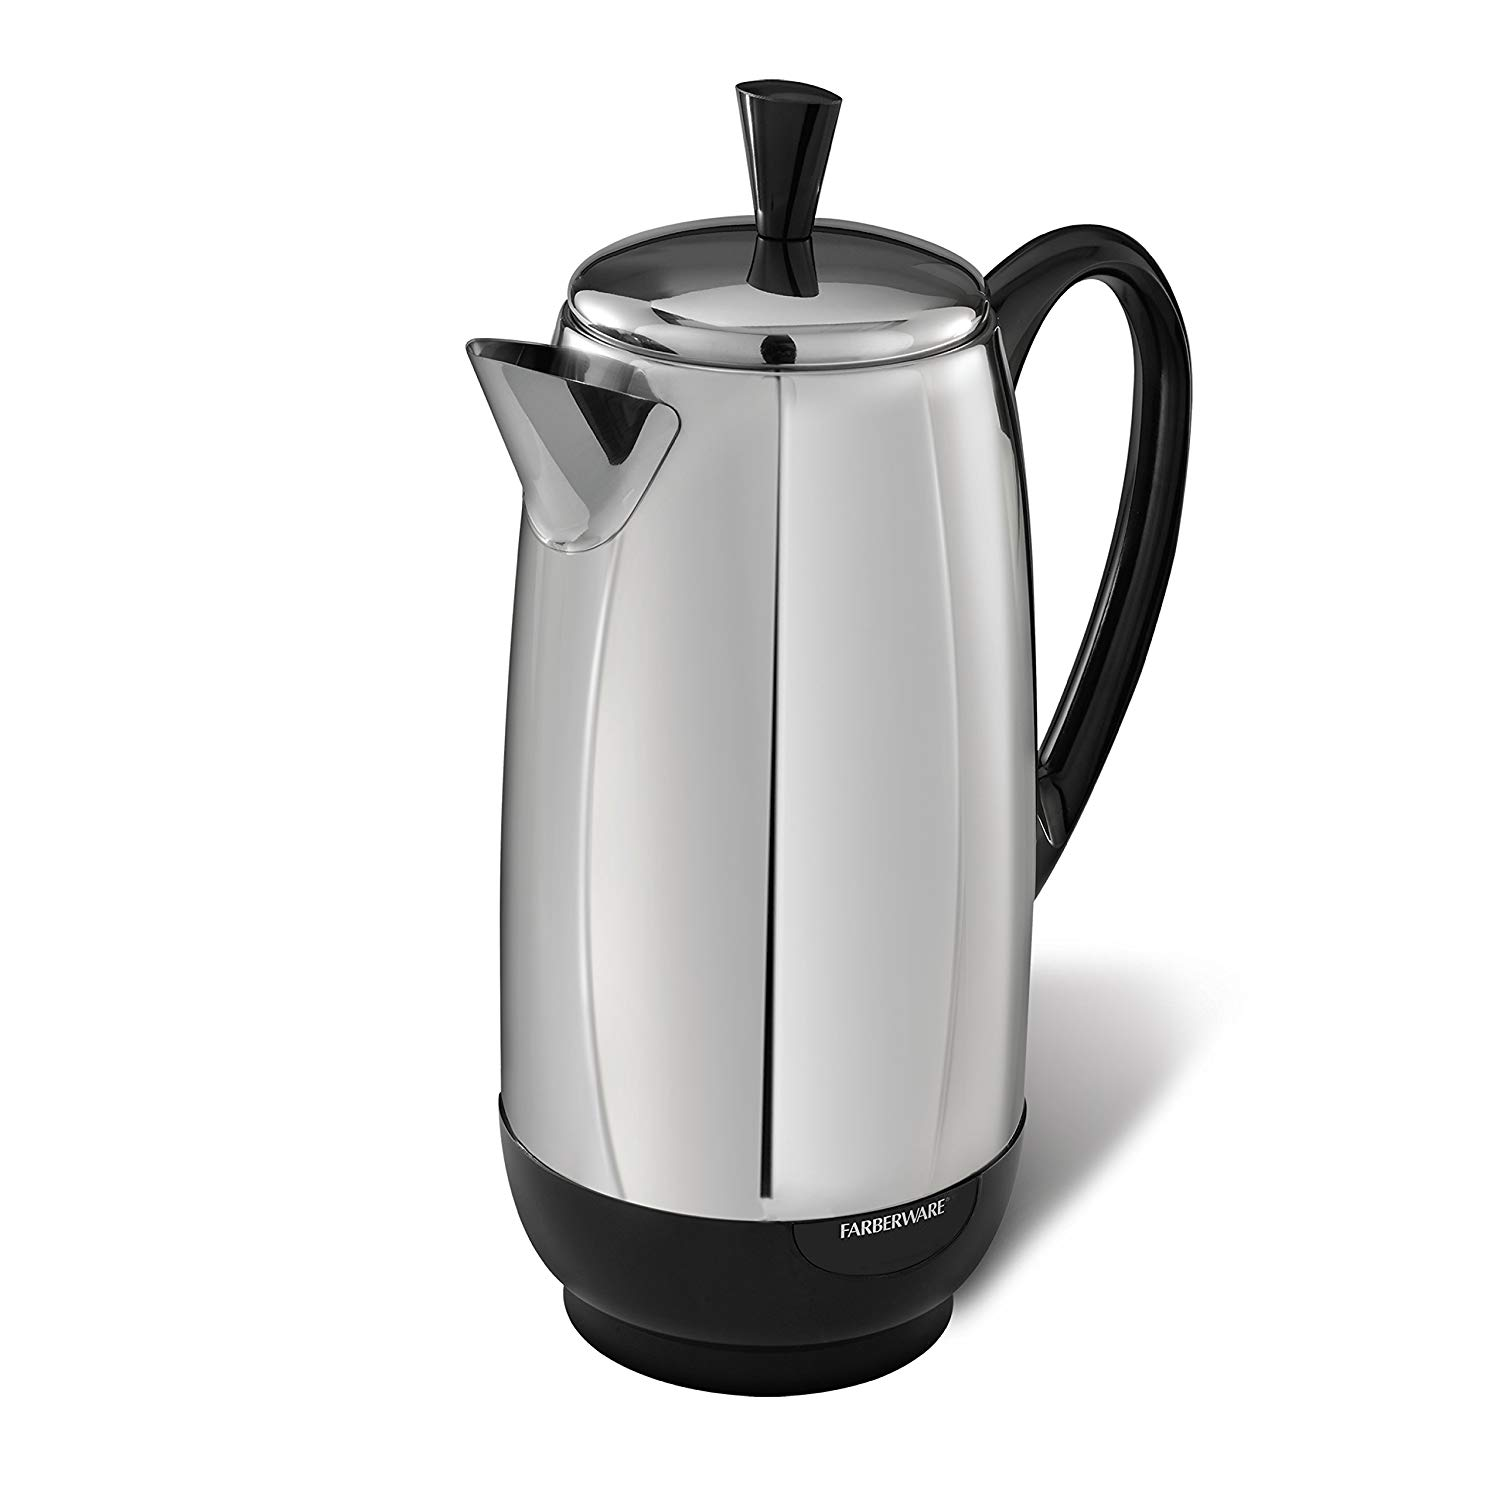 Farberware fcp412 12-cup percolator